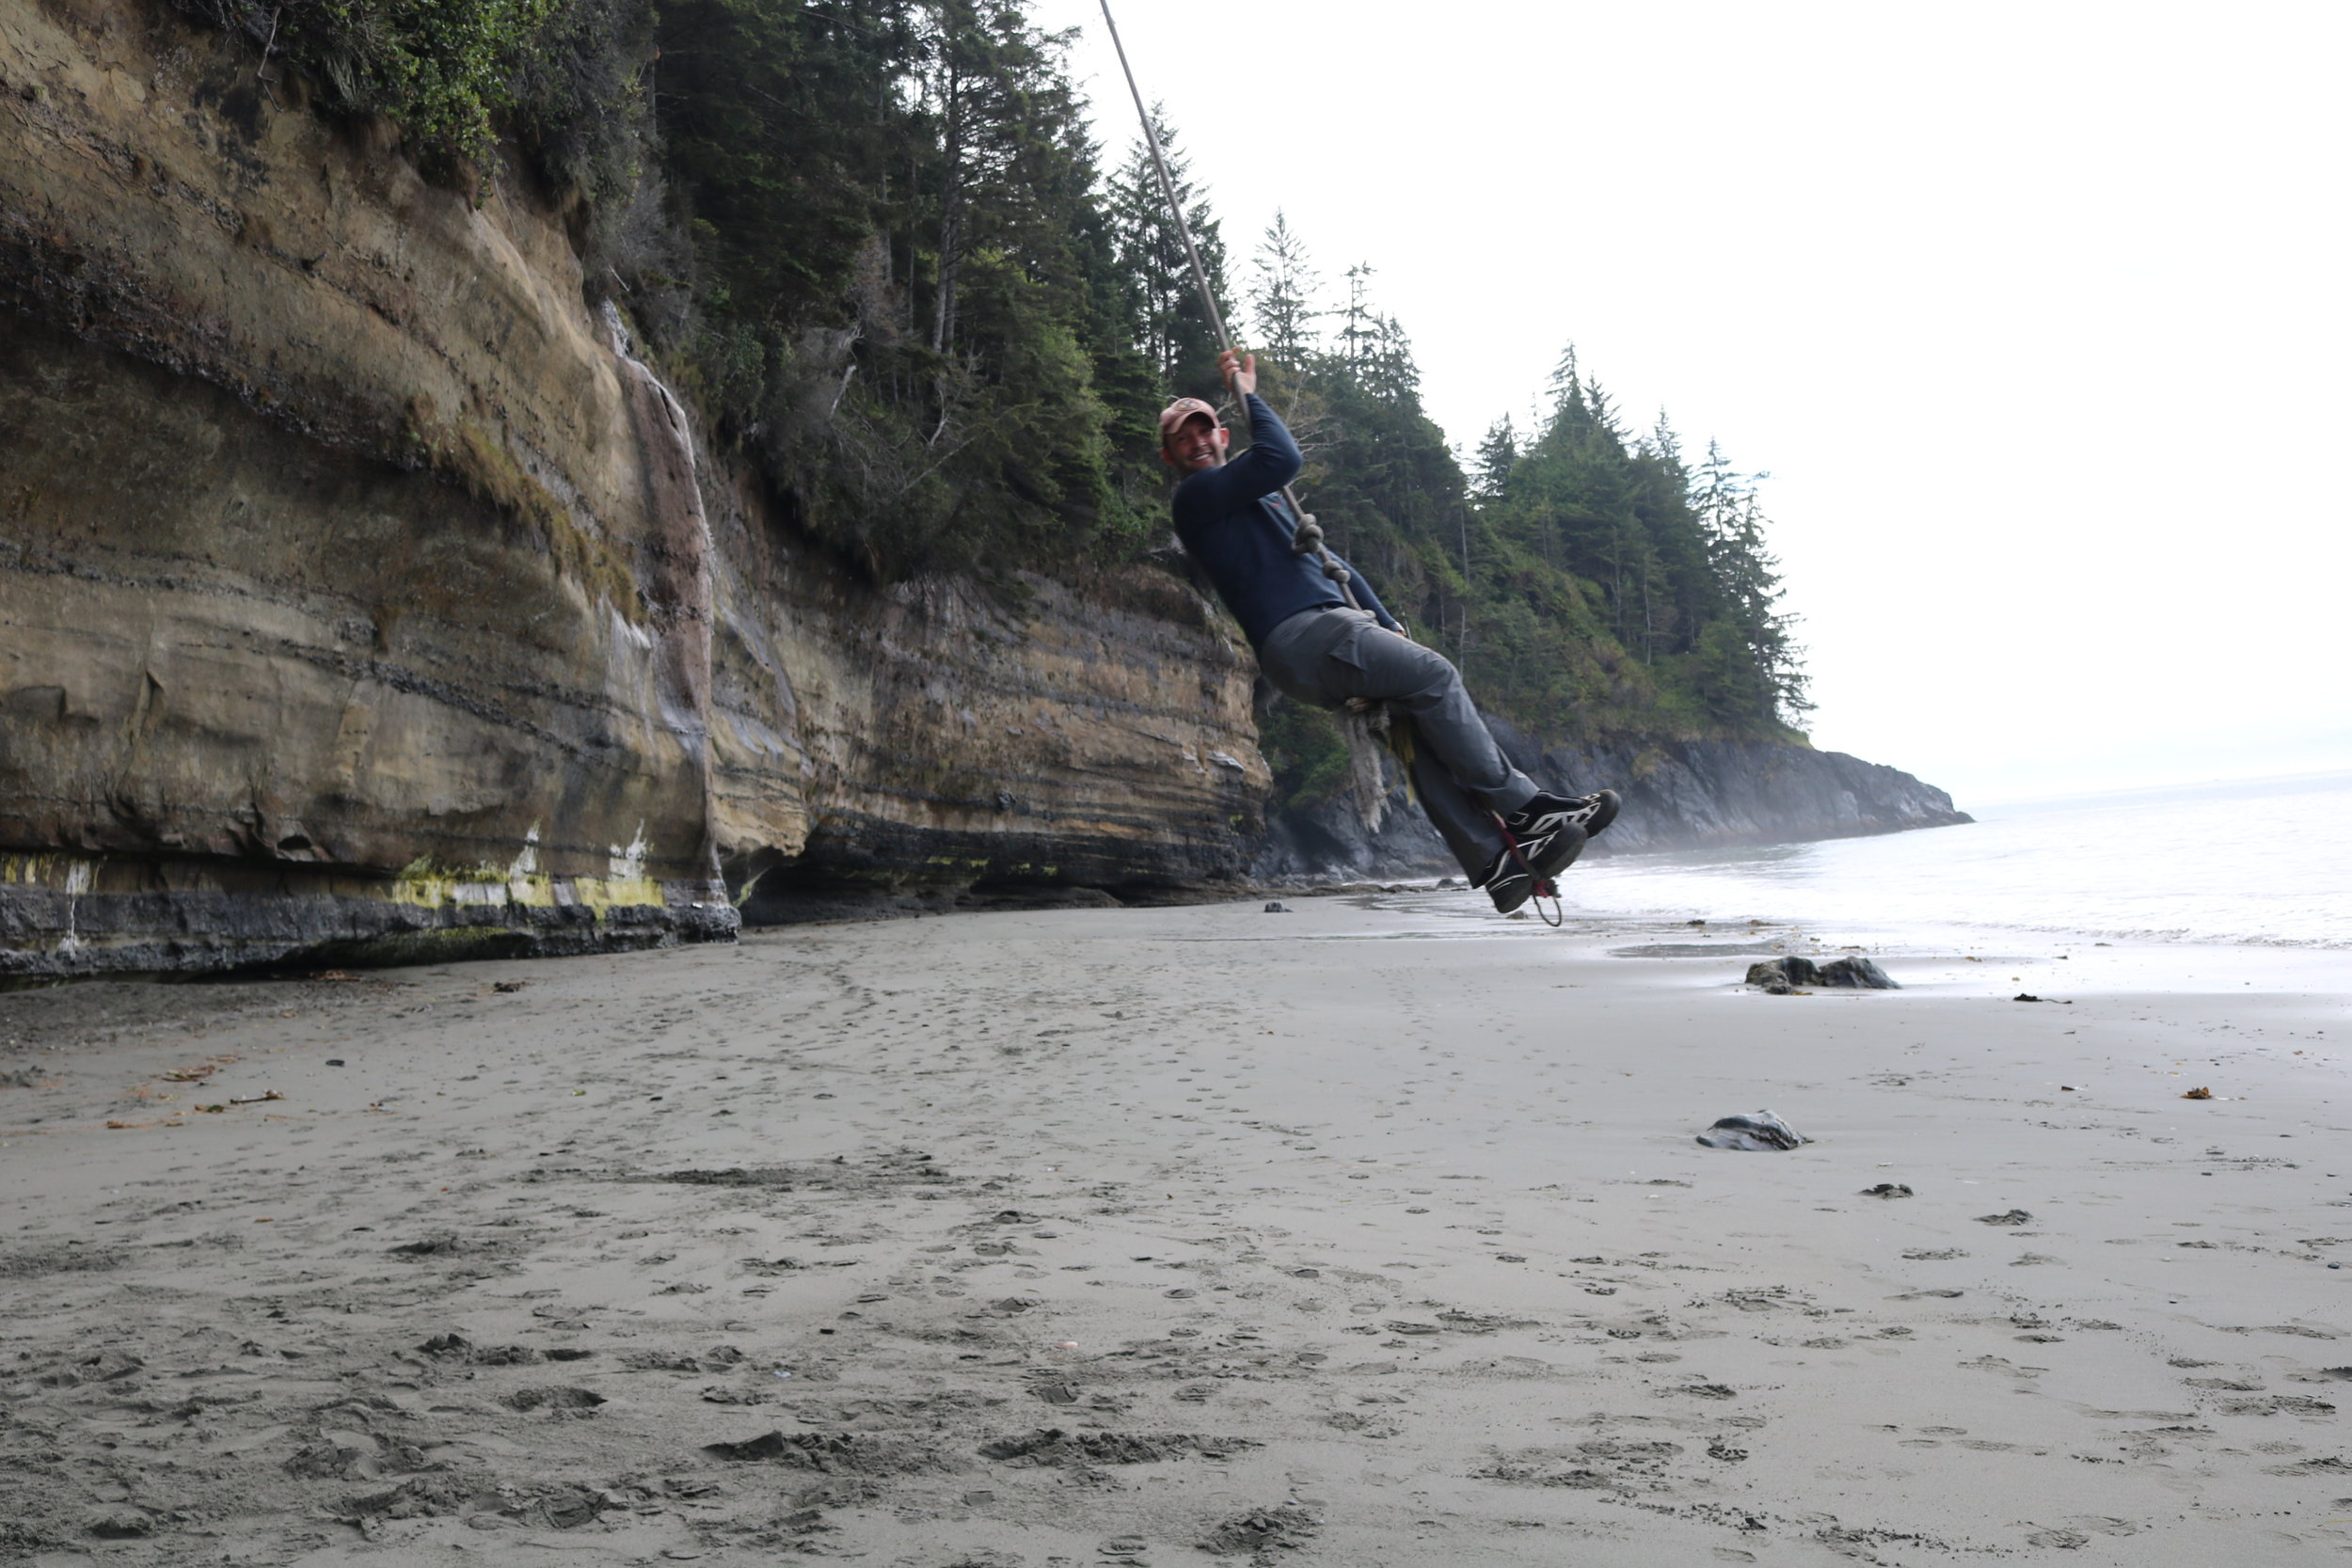 While not maintained by the park, the rope swing at Mystic Beach is a unique and fun experience.